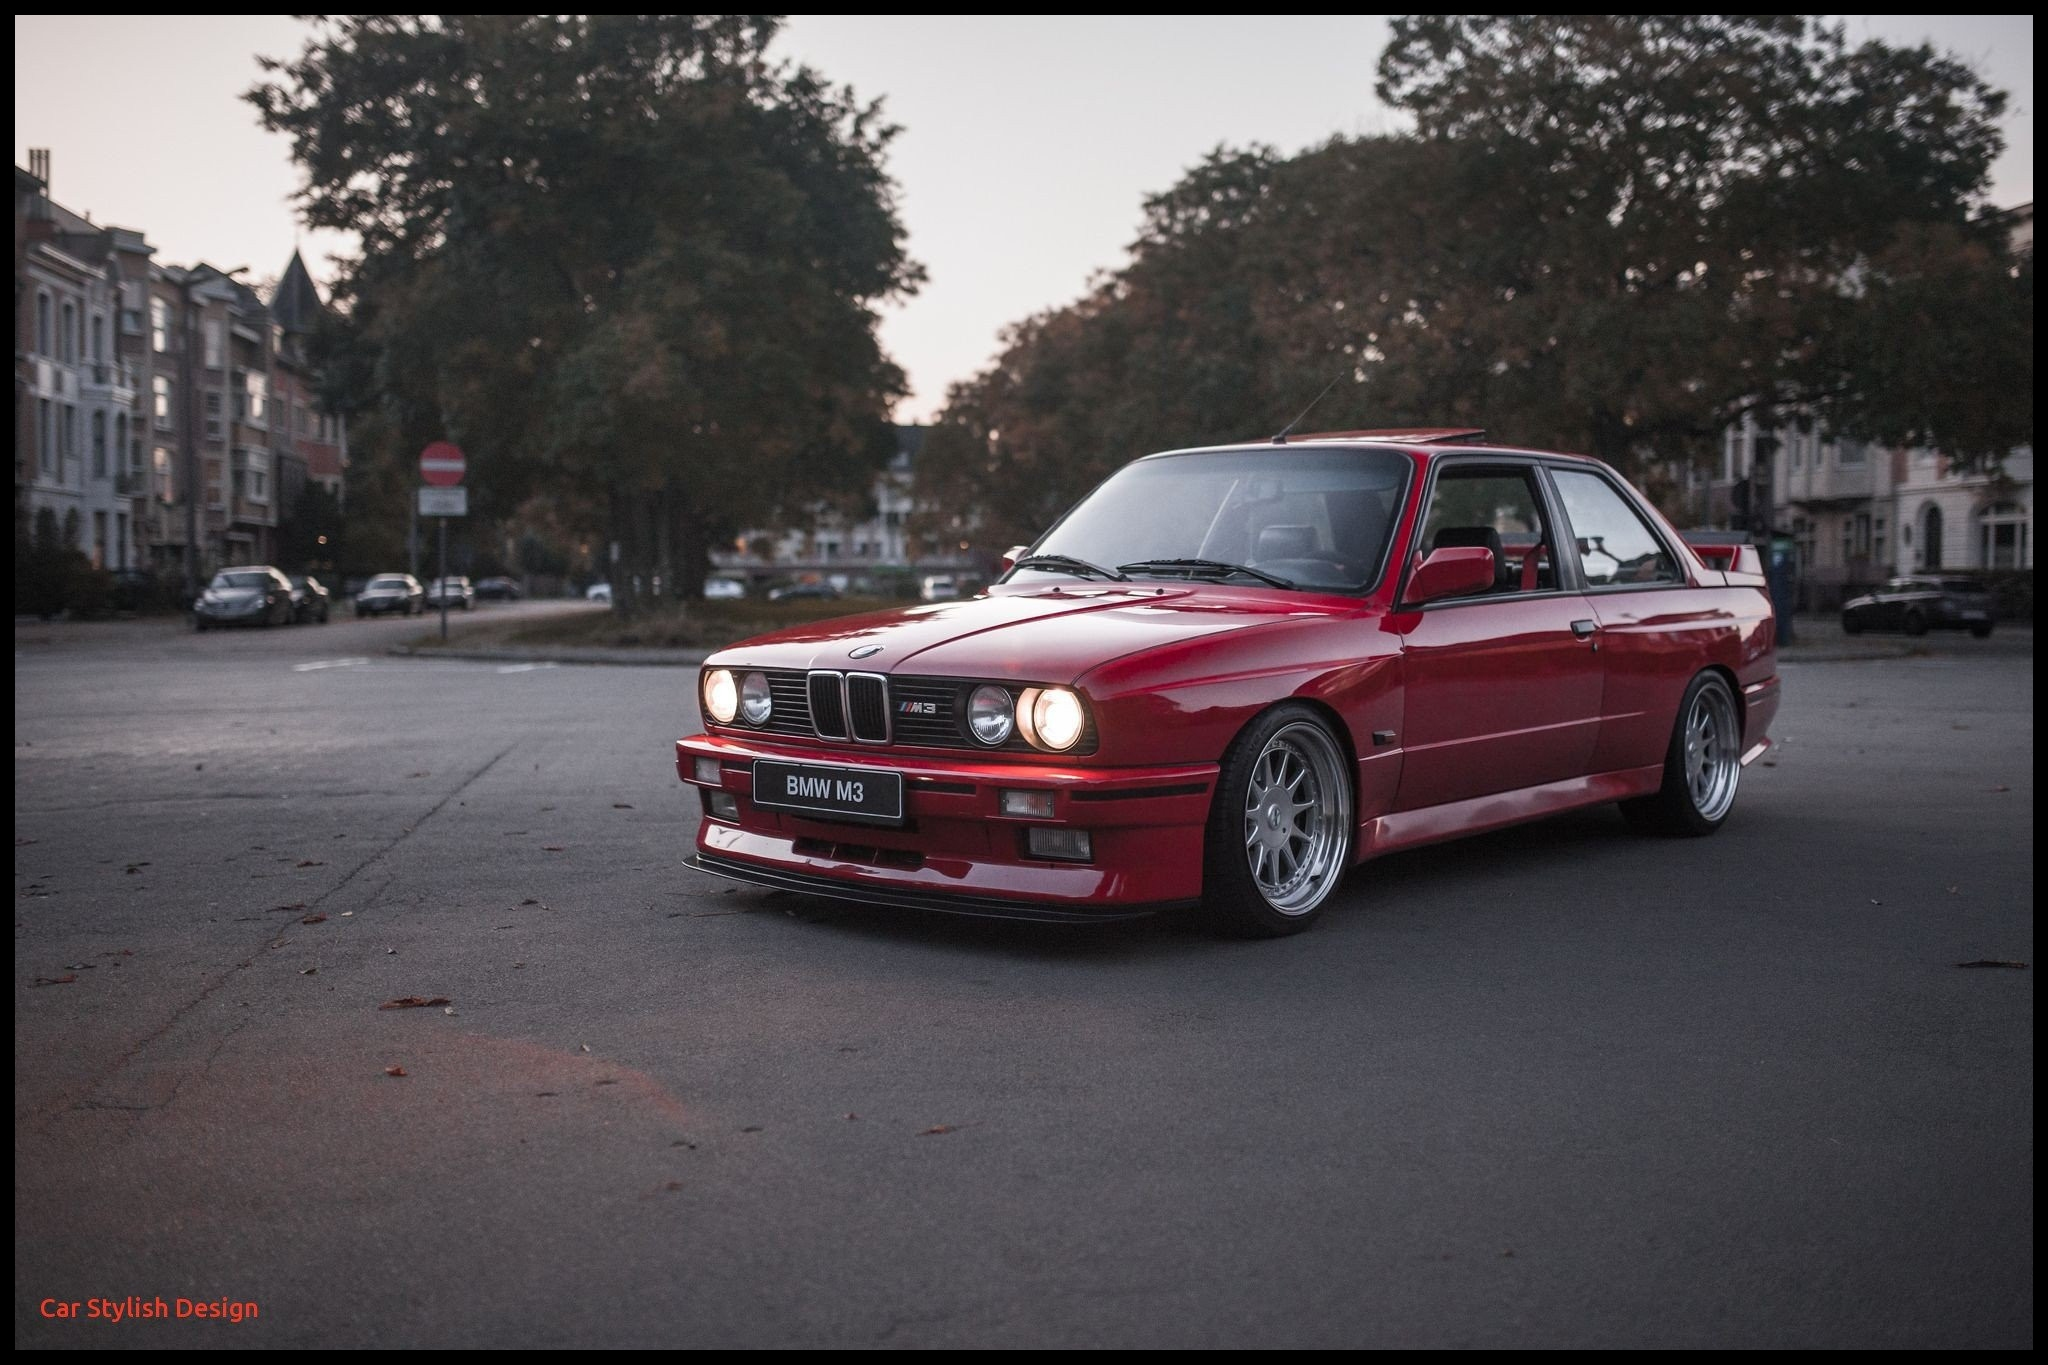 Used Bmw E30 for Sale Awesome Bmw E30 M3 Elegant Bmw Drift Best Drift Bmw 330d